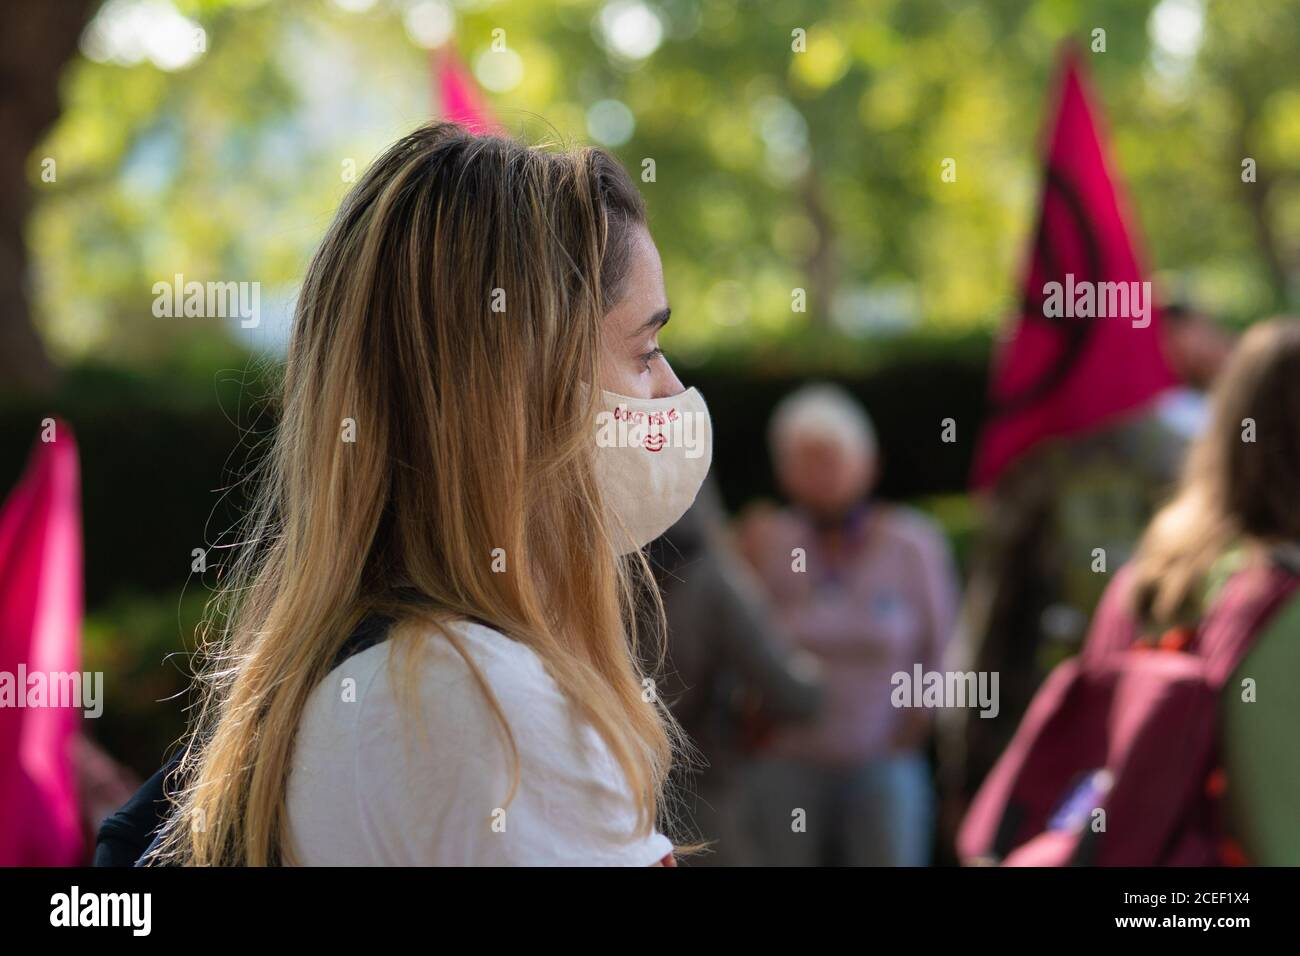 London, UK. Tuesday, September 1, 2020. A protester at an Extinction Rebellion rally in London wearing a mask that says DonÕt Kiss Me Bill. Photo: Roger Garfield/Alamy Live News Stock Photo